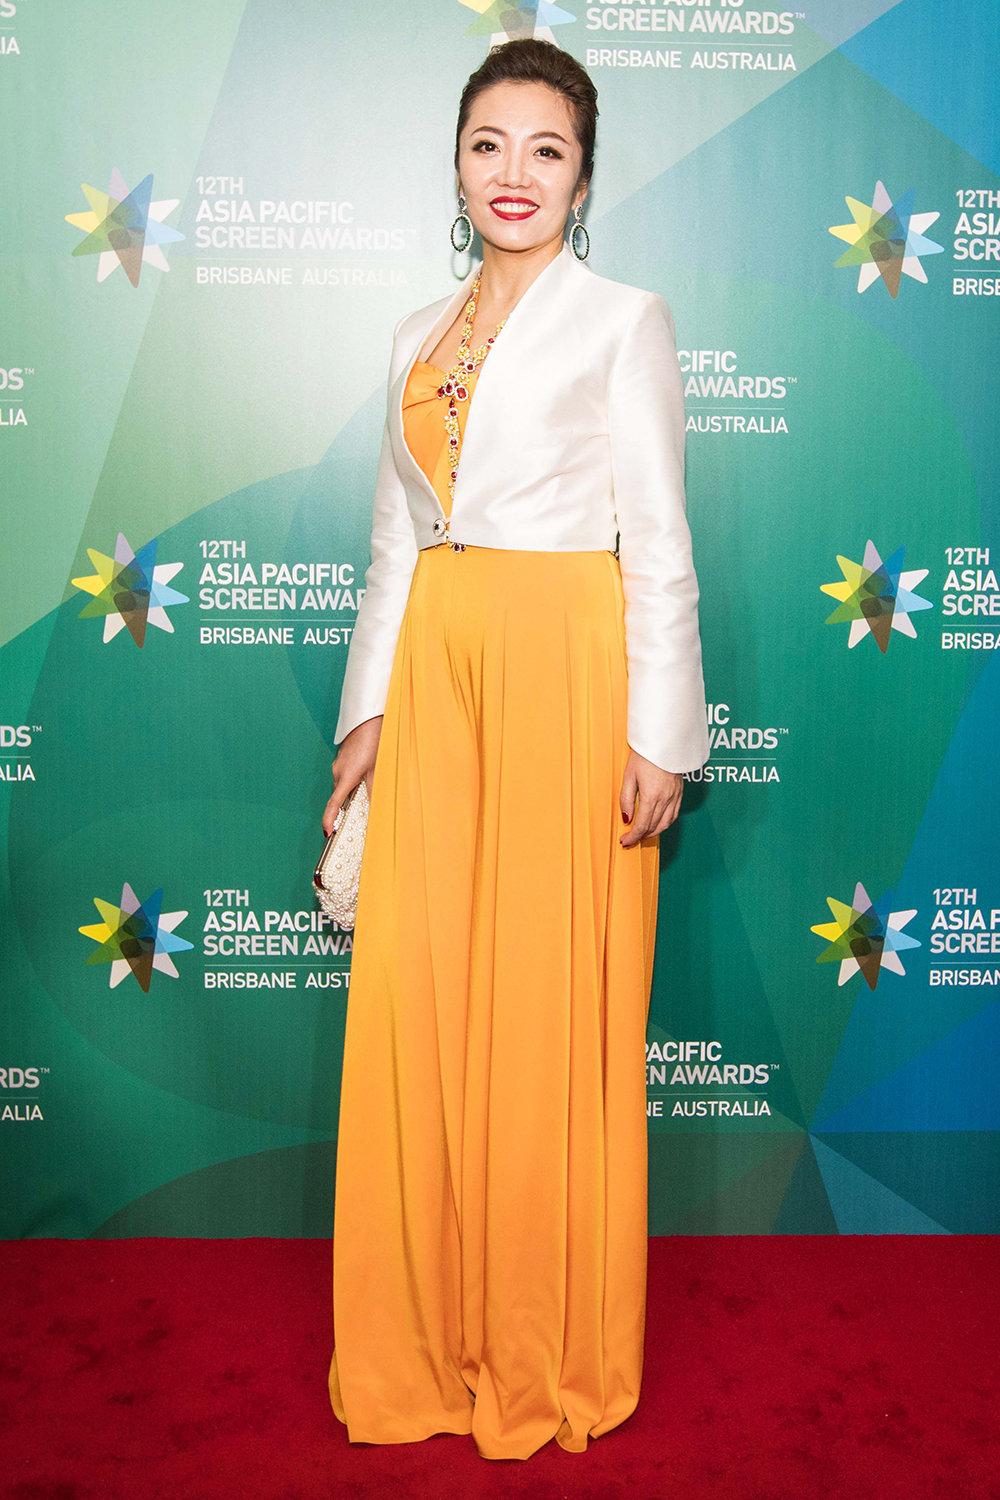 Chinese Woman in a Yellow dress at the Asia Pacific Screen Awards in Brisbane